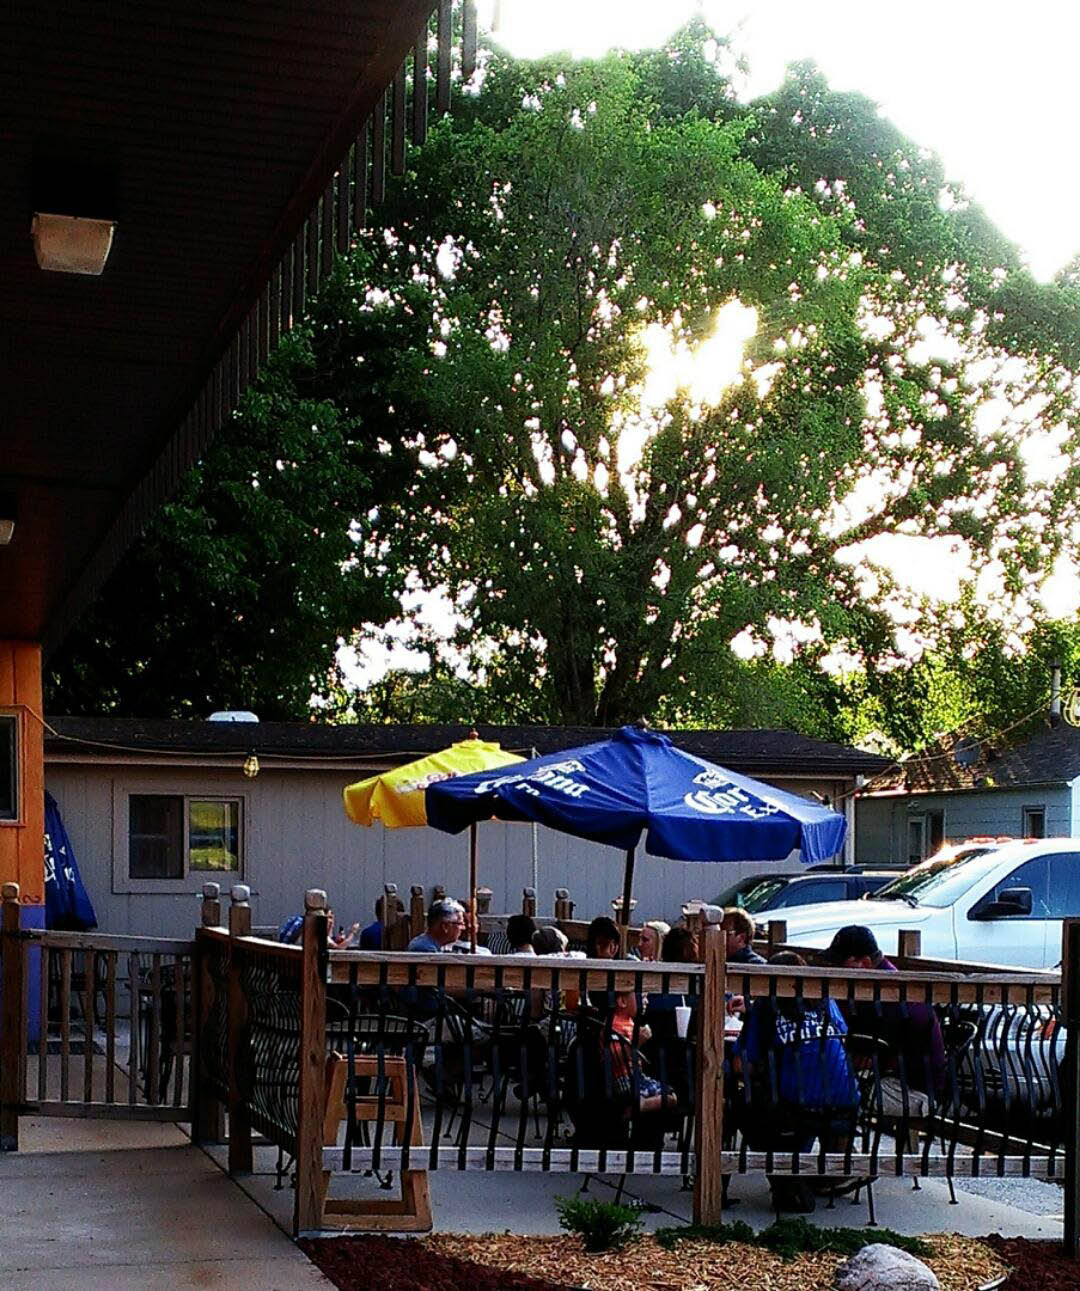 Patio Dining In Des Moines, Iowa